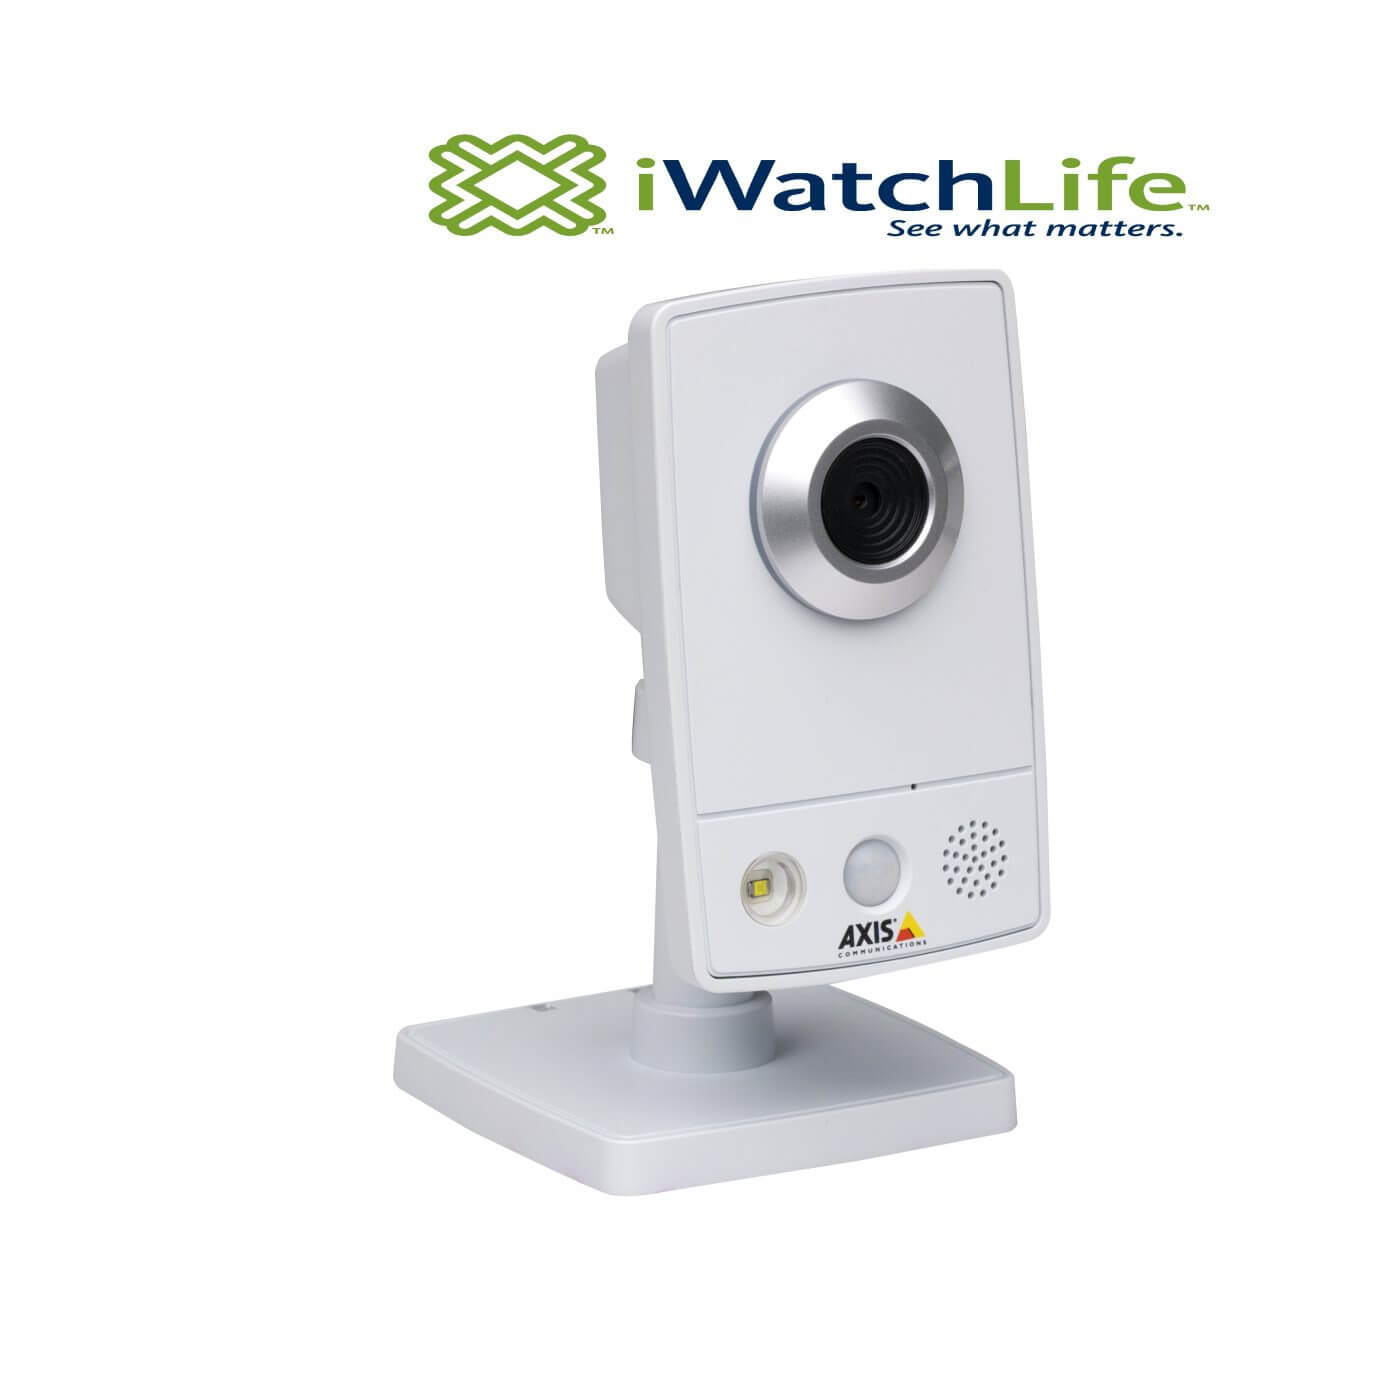 Cameras for monitoring home